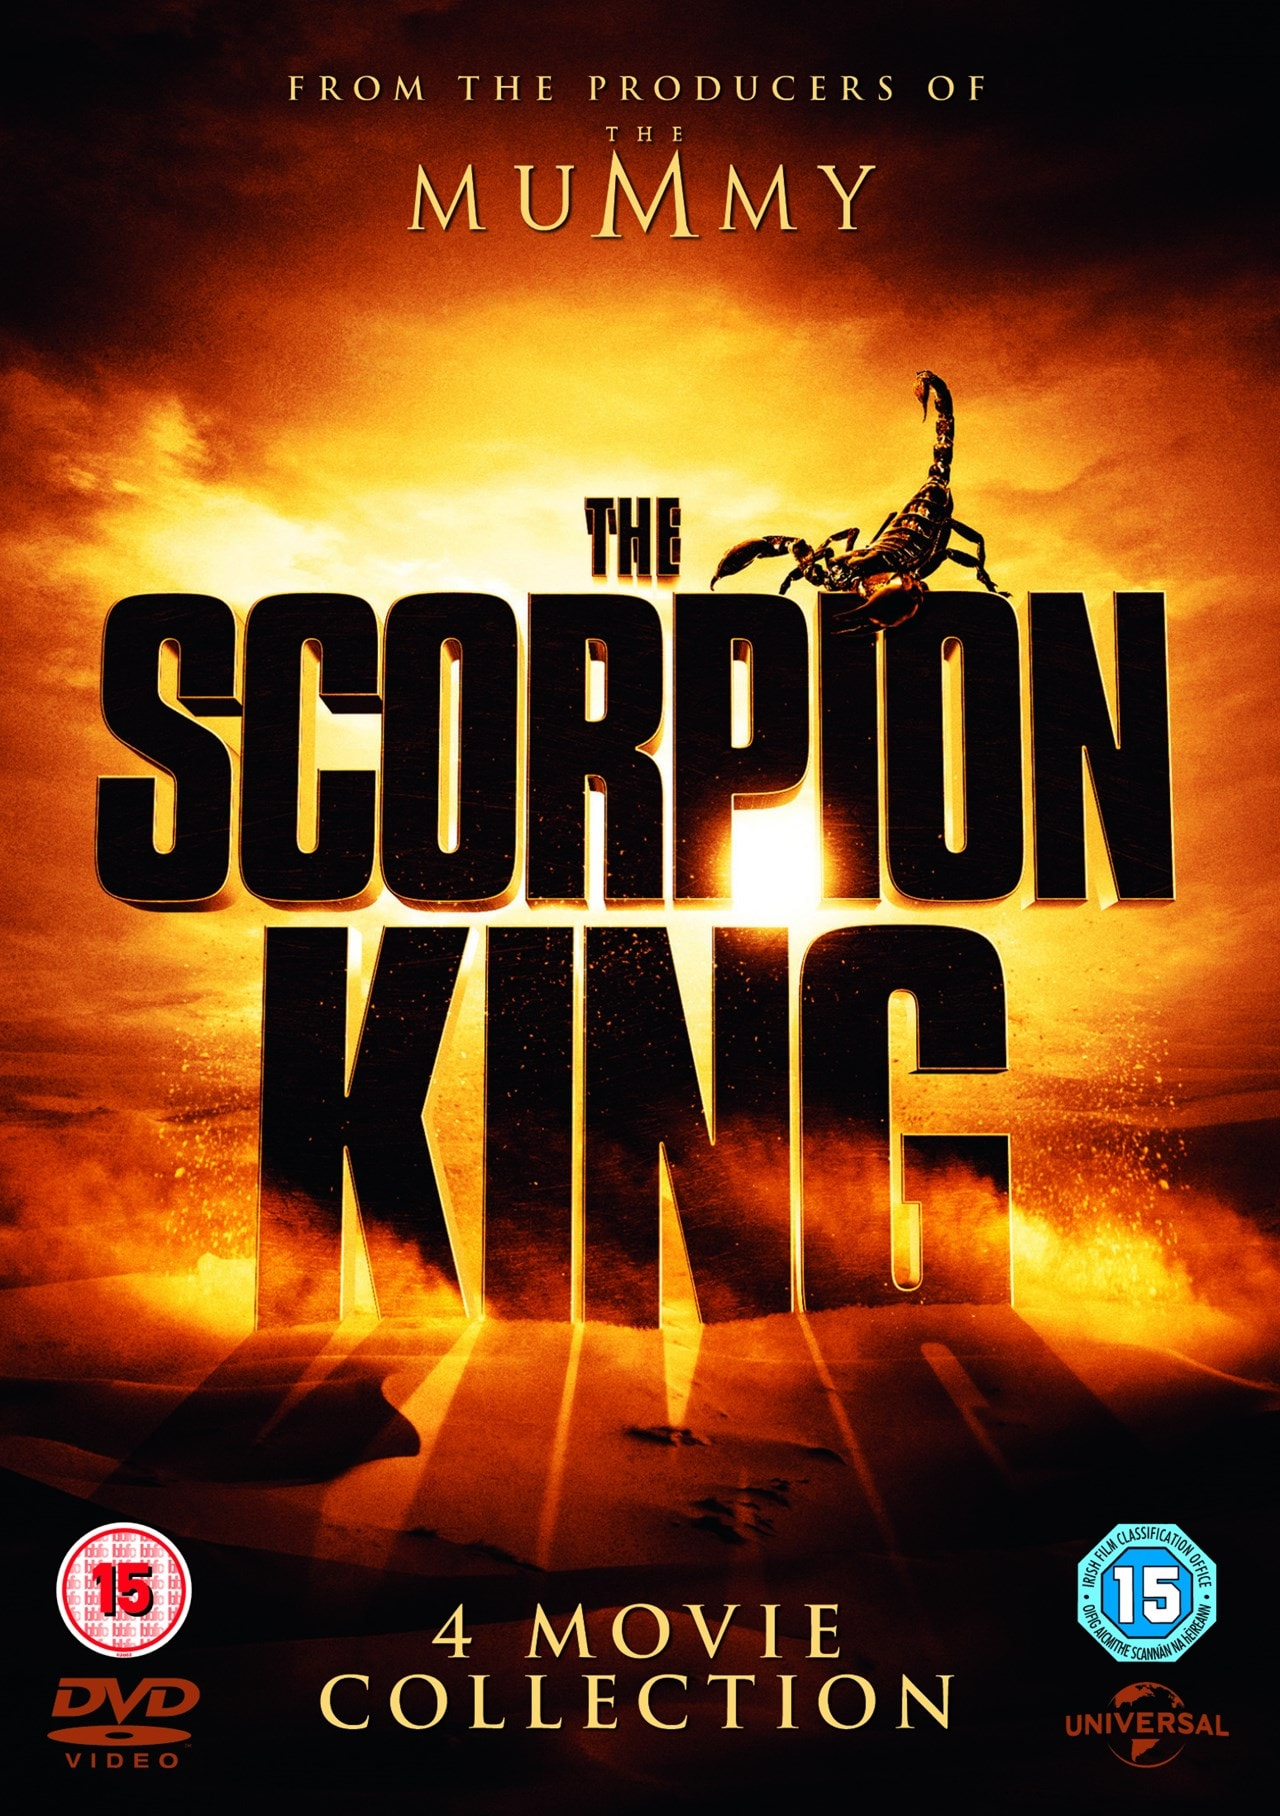 The Scorpion King: 4-movie Collection - 1